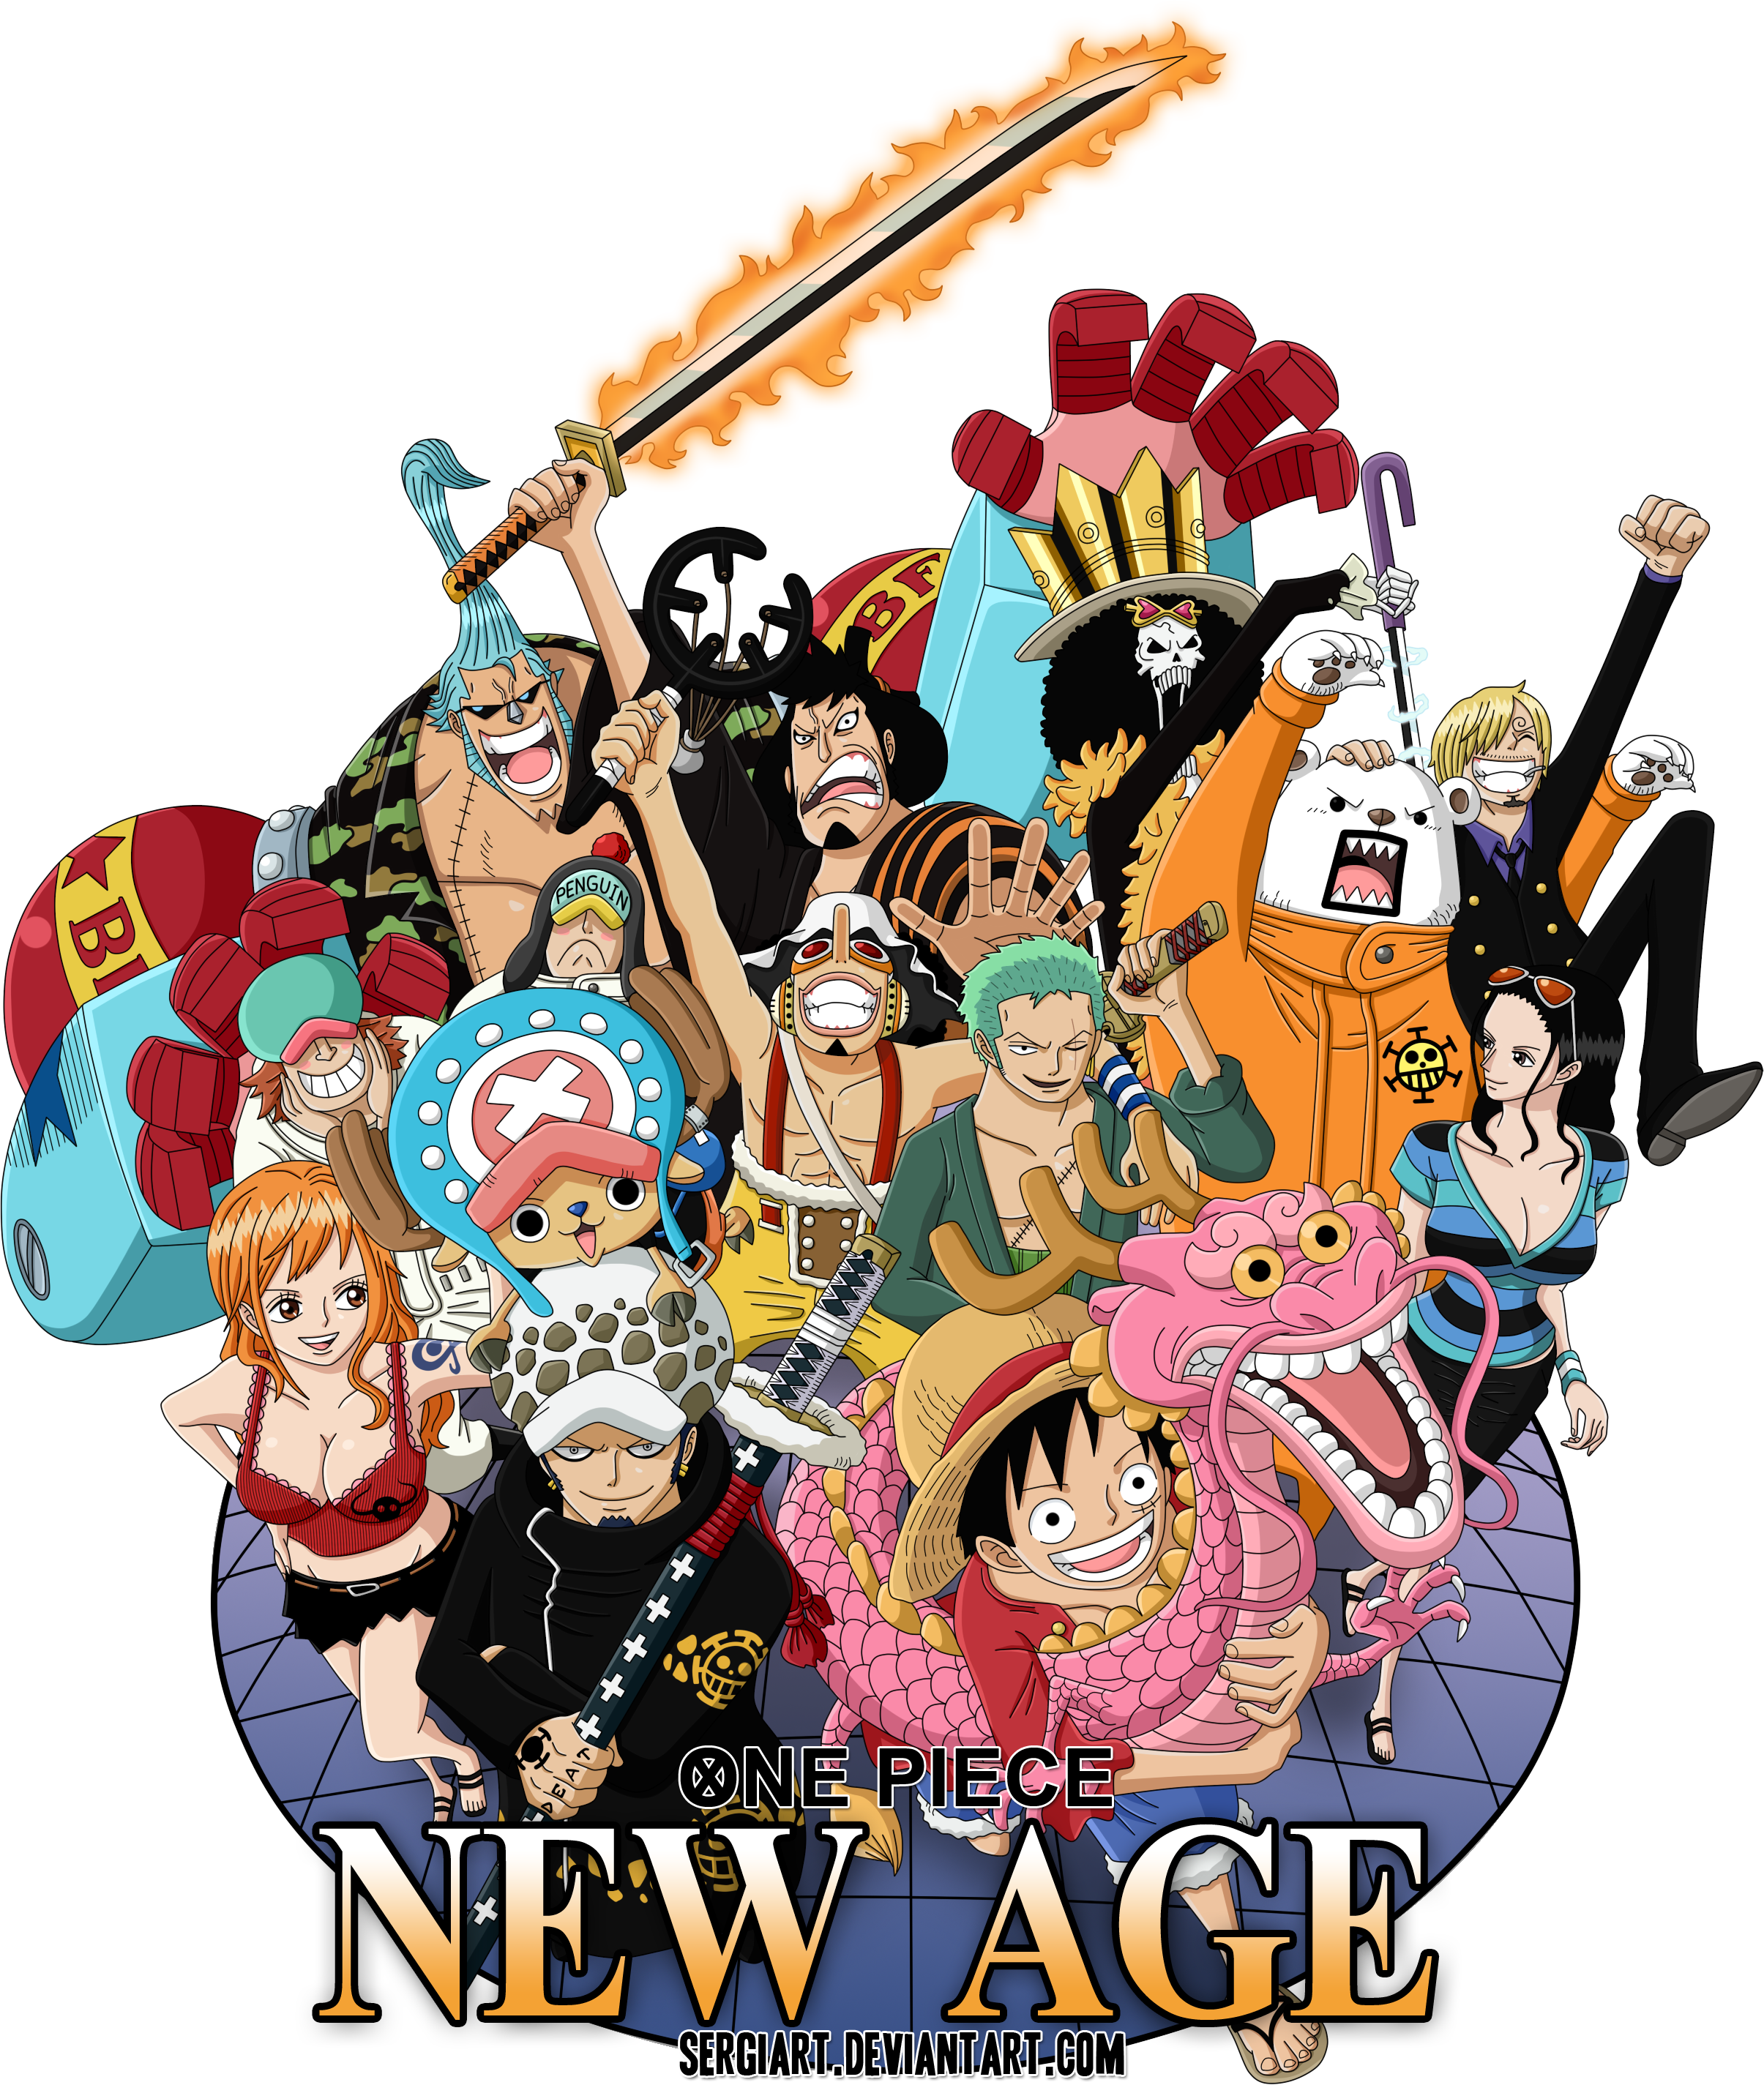 One Piece New Age By Sergiart On Deviantart One Piece Anime One Piece Manga One Piece